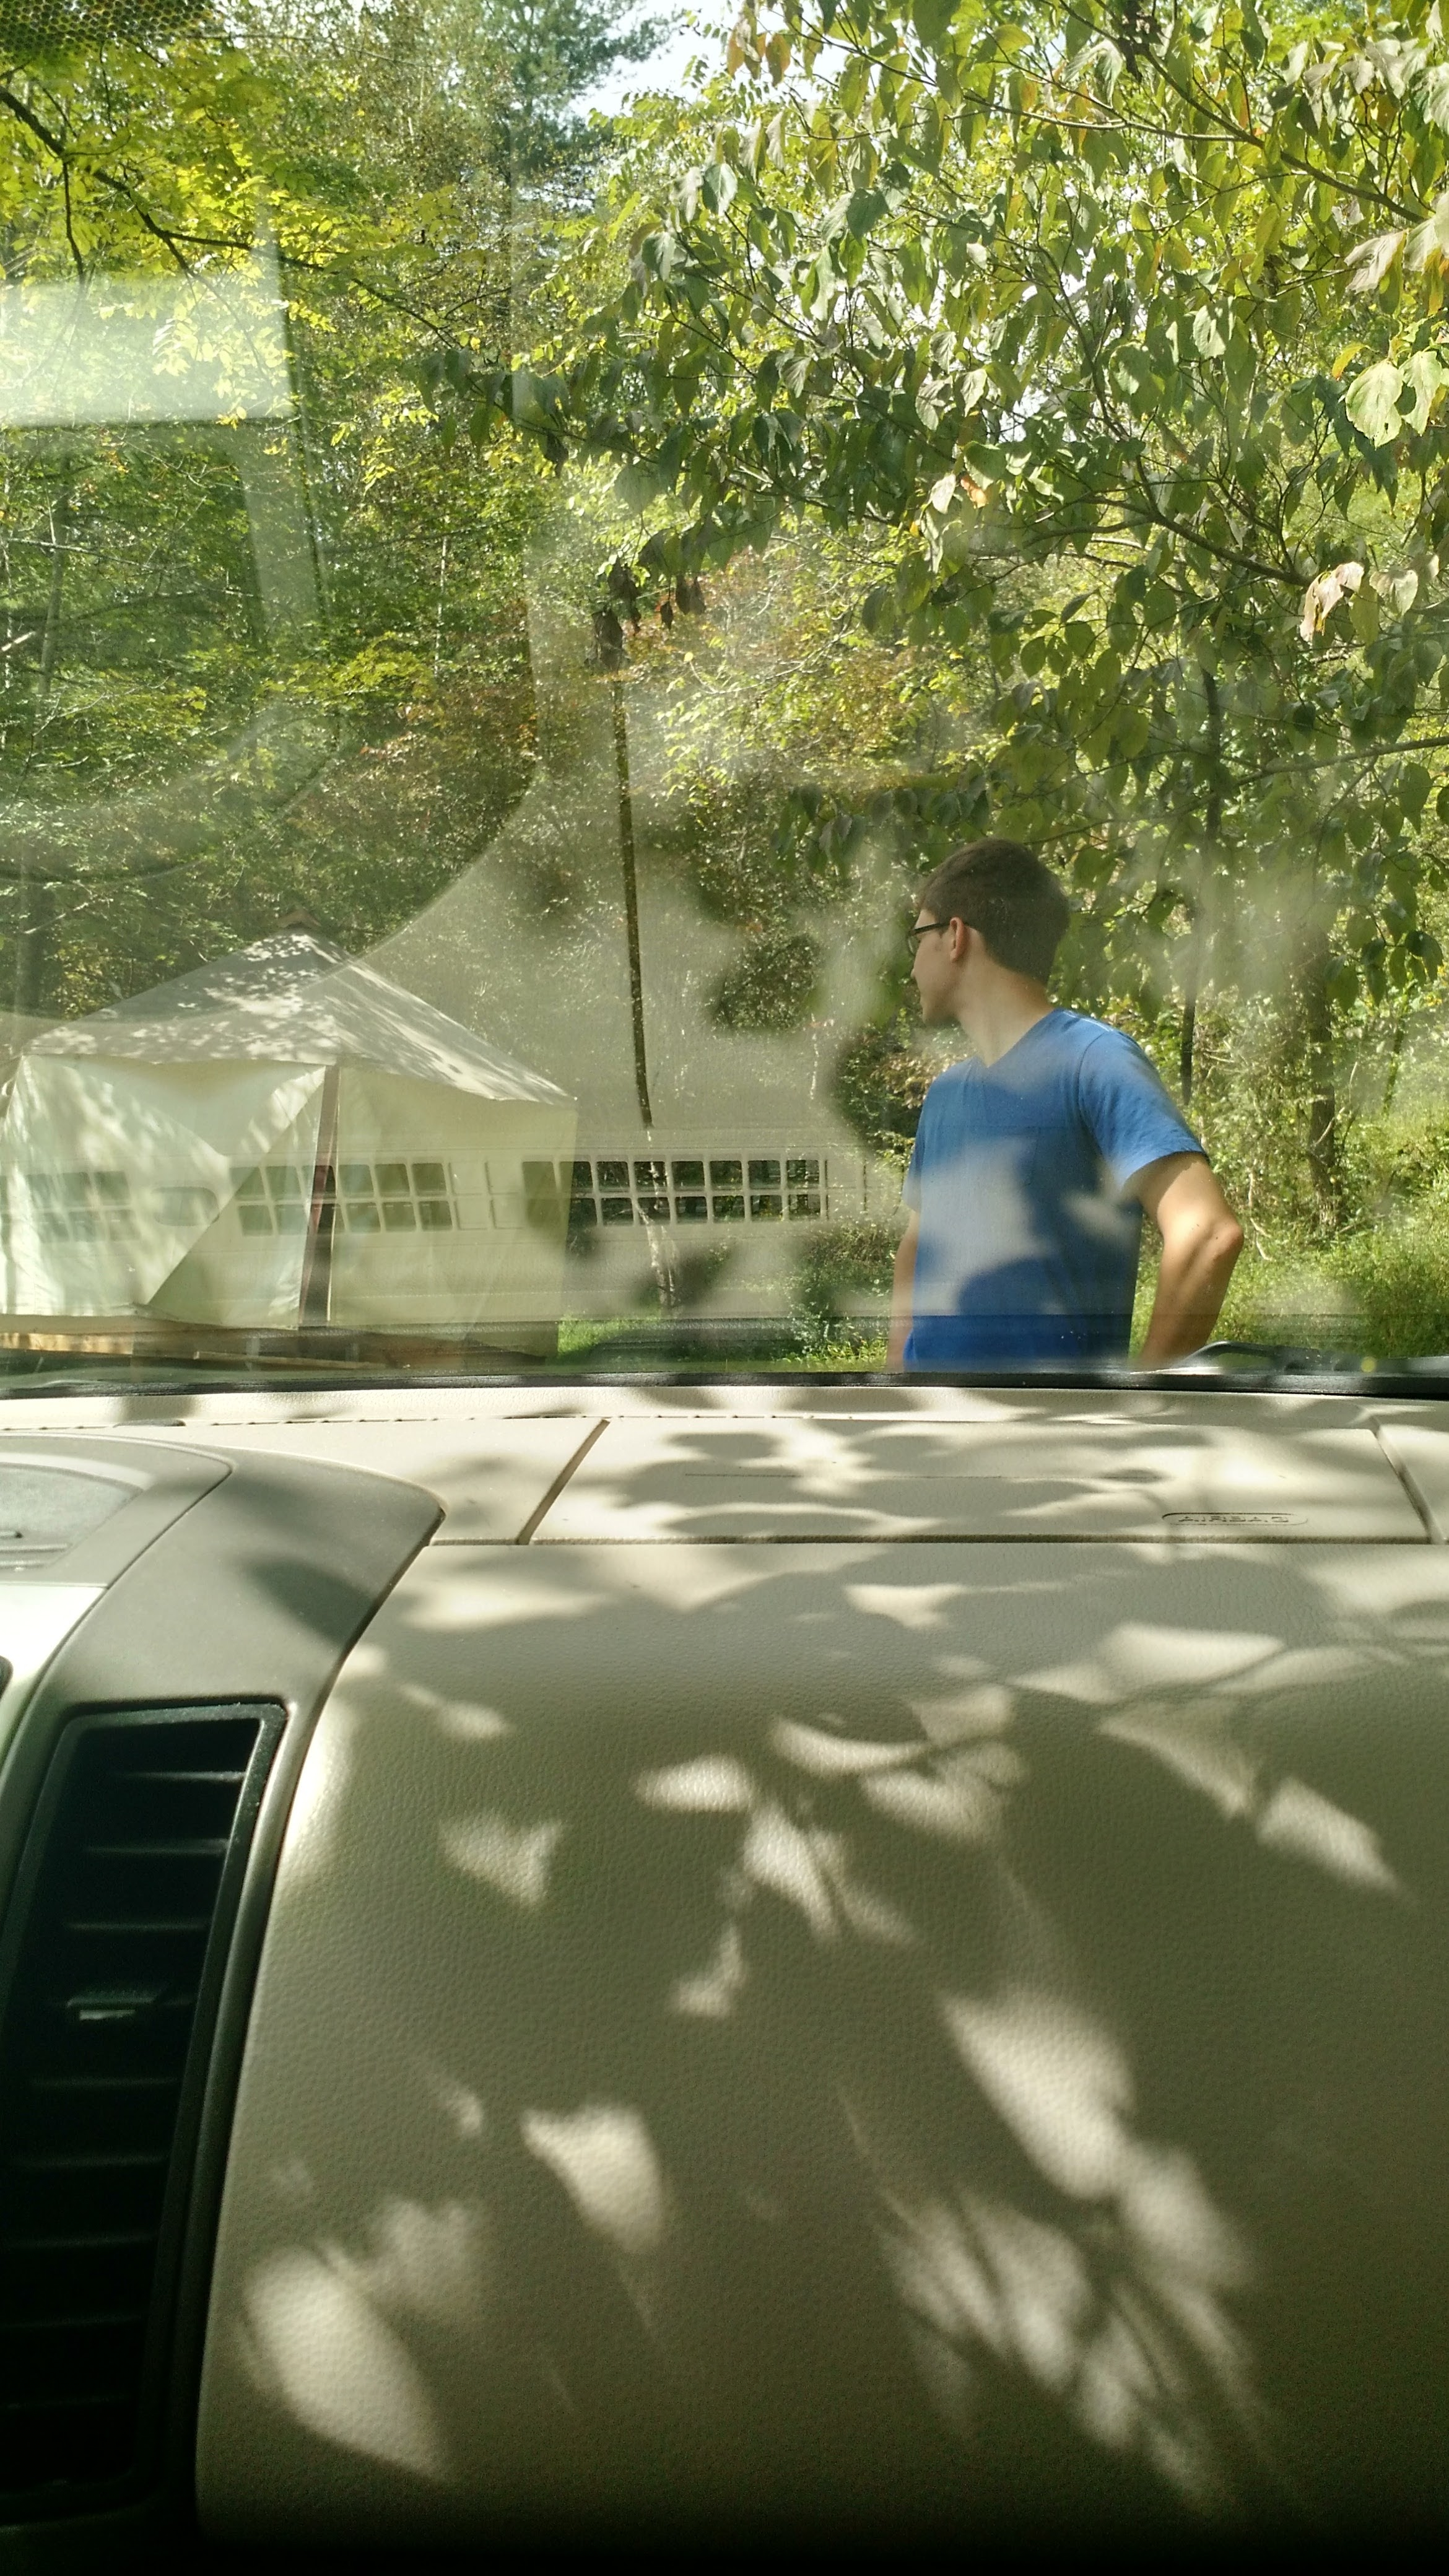 The moment I ran to the car for safety, leaving poor Tom outside knowing he chose terrible accommodations! We laughed.